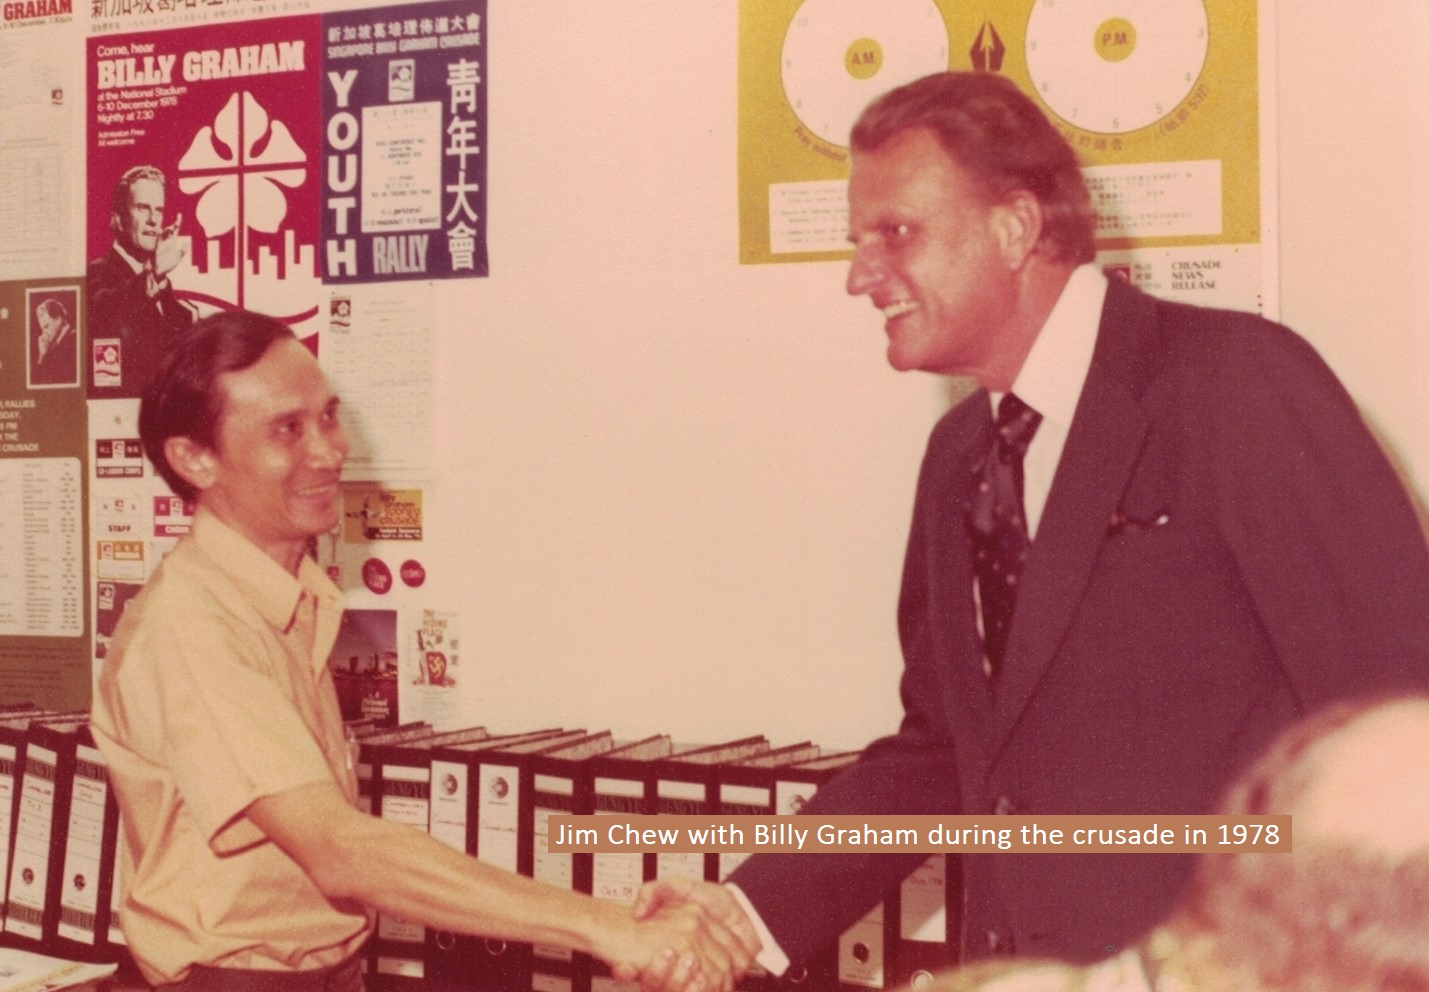 Jim Chew with Billy Graham during the crusade in 1978